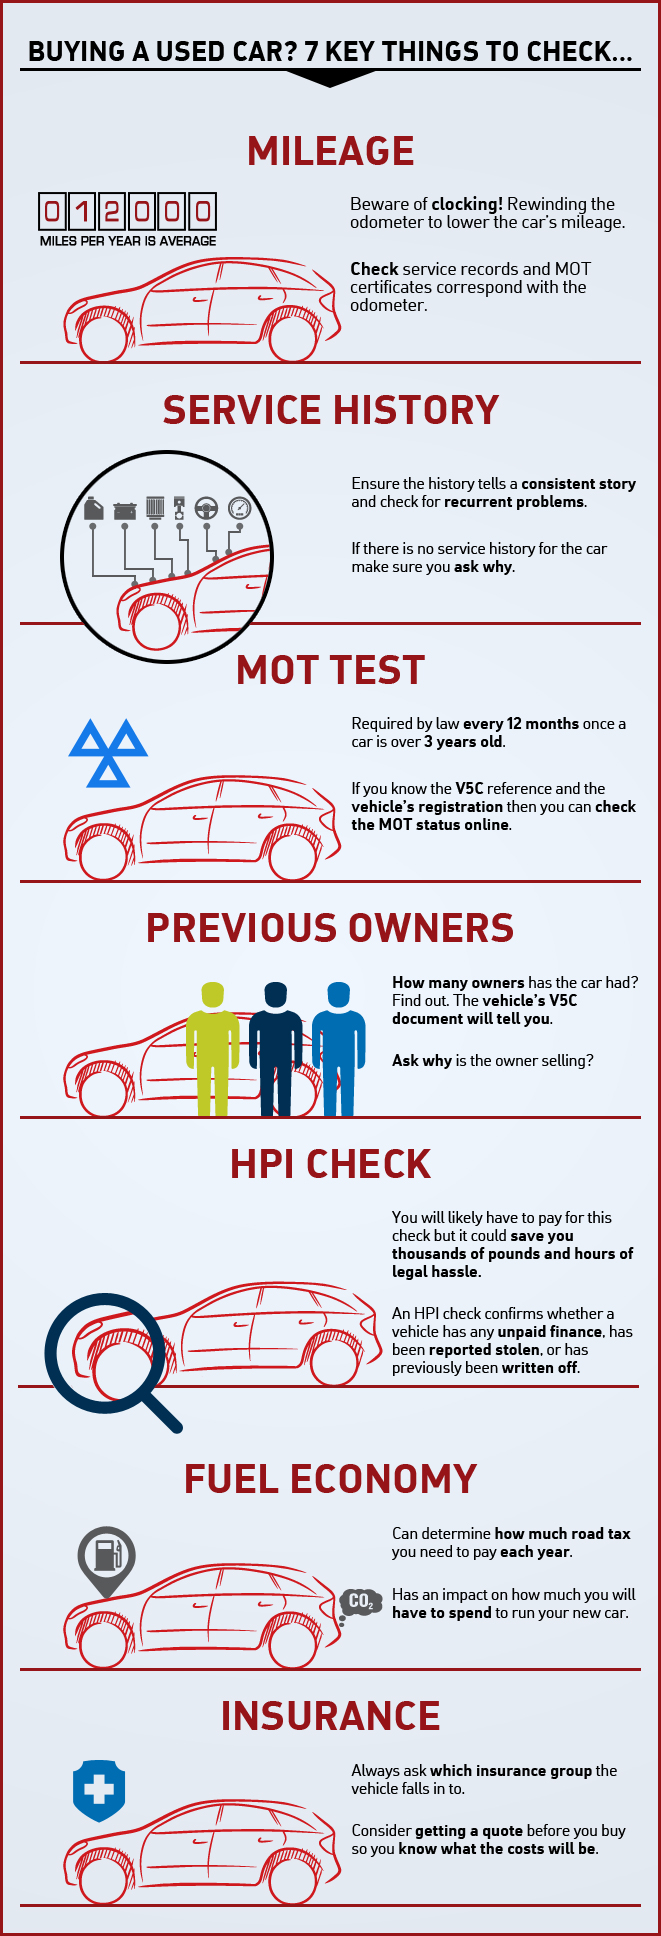 Buying A Used Car? 7 Things To Check... | Visual.ly